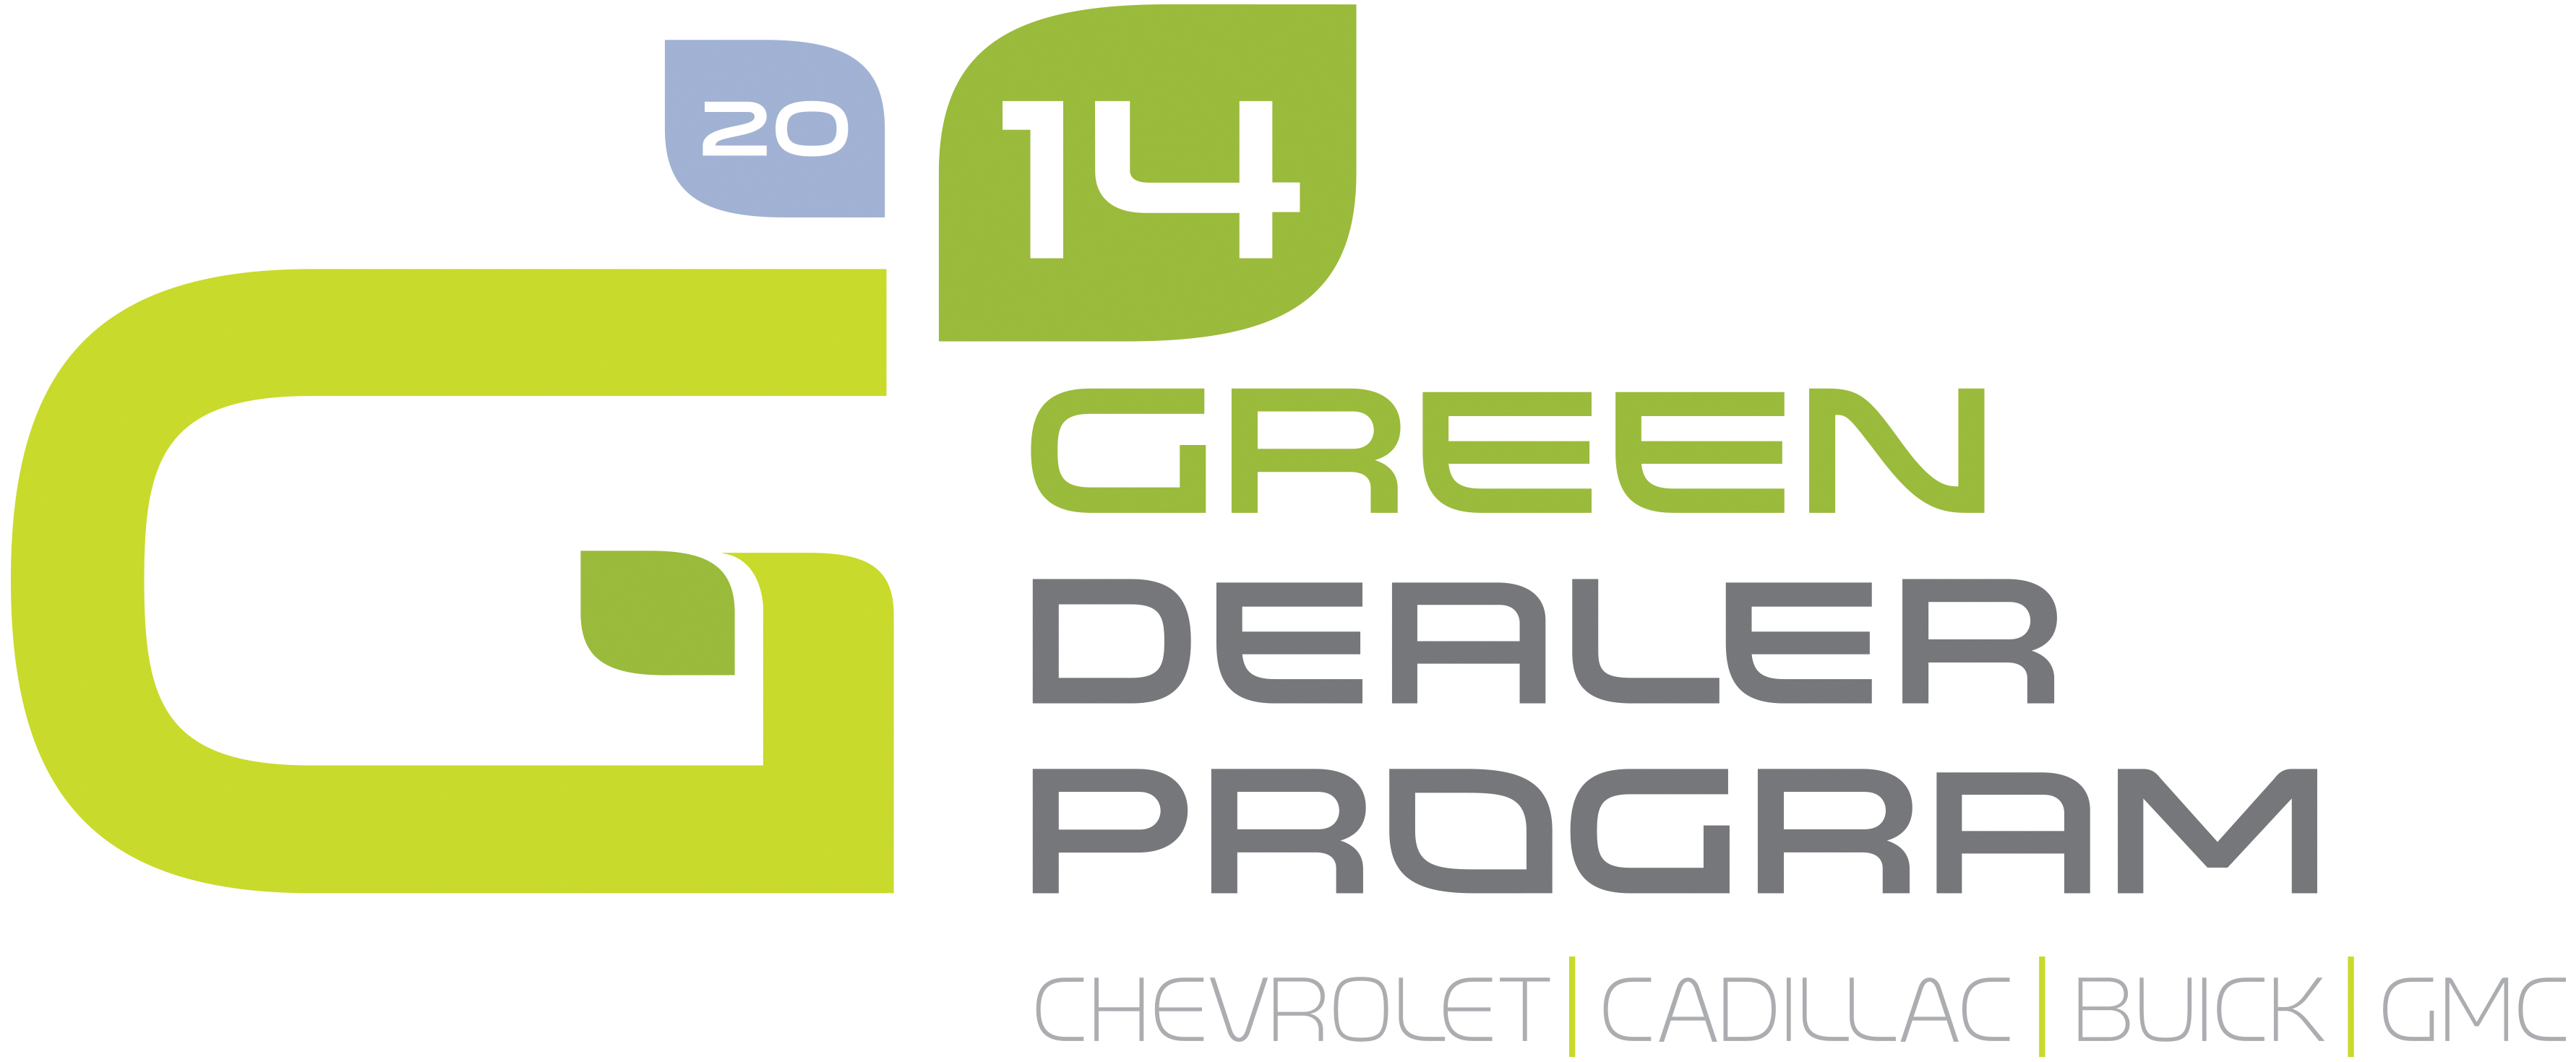 Cadillac Of Bentonville >> GM Dealers Show Their Sustainability to Customers